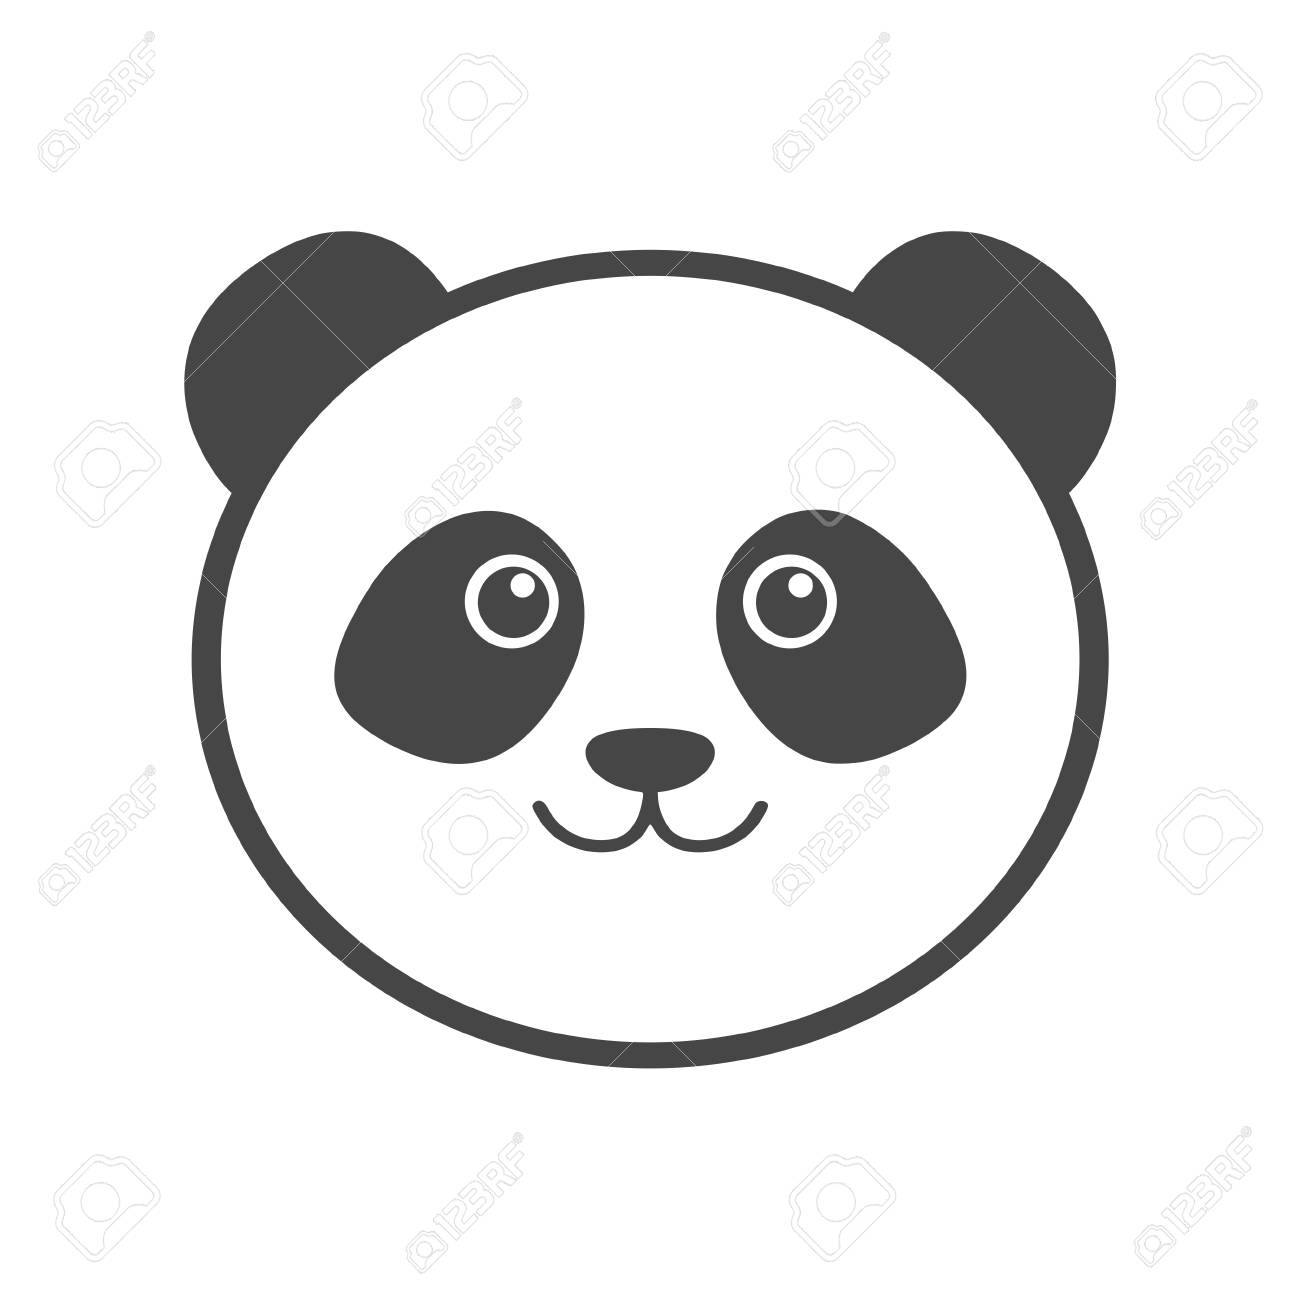 panda icon vector illustration royalty free cliparts vectors and